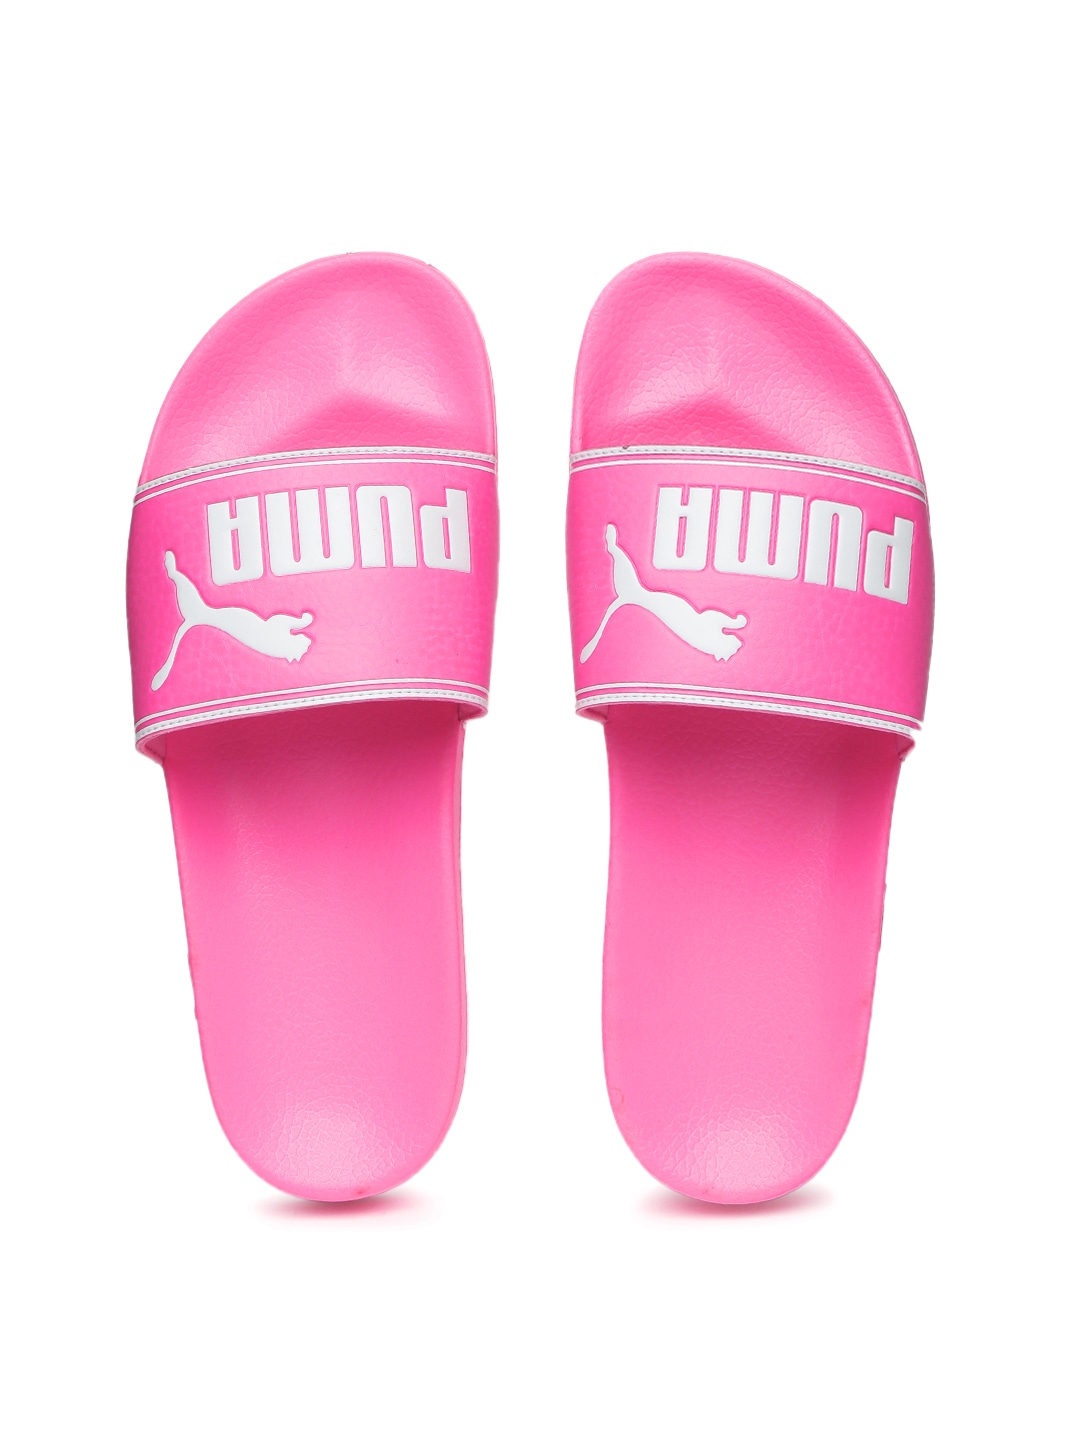 29e7aad95bb Women s Puma Flip Flops - Buy Puma Flip Flops for Women Online in India